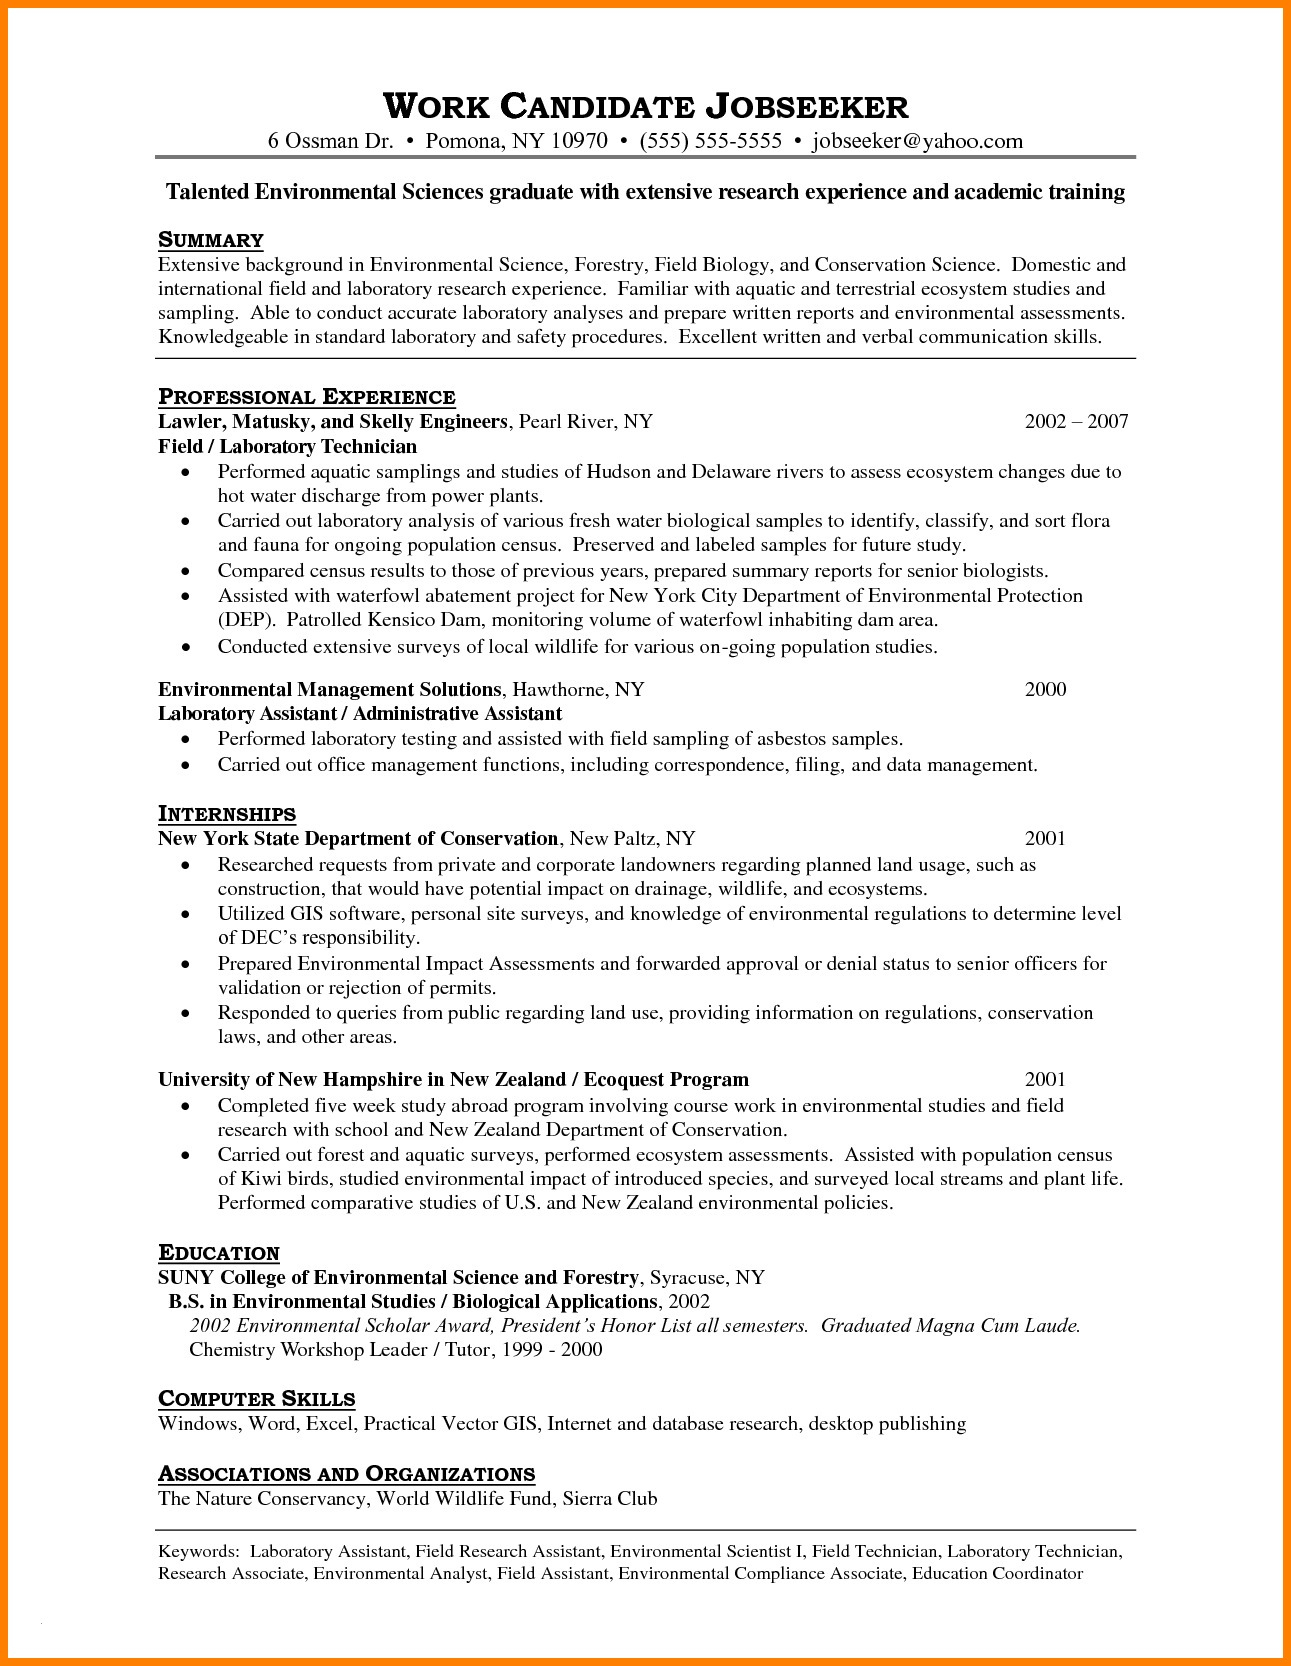 microbiology lab technician resume Collection-Laboratory Technician Resume Inspirational Laboratory Tech Resume Examples Awesome Medical Lab Technician Cv 1-e